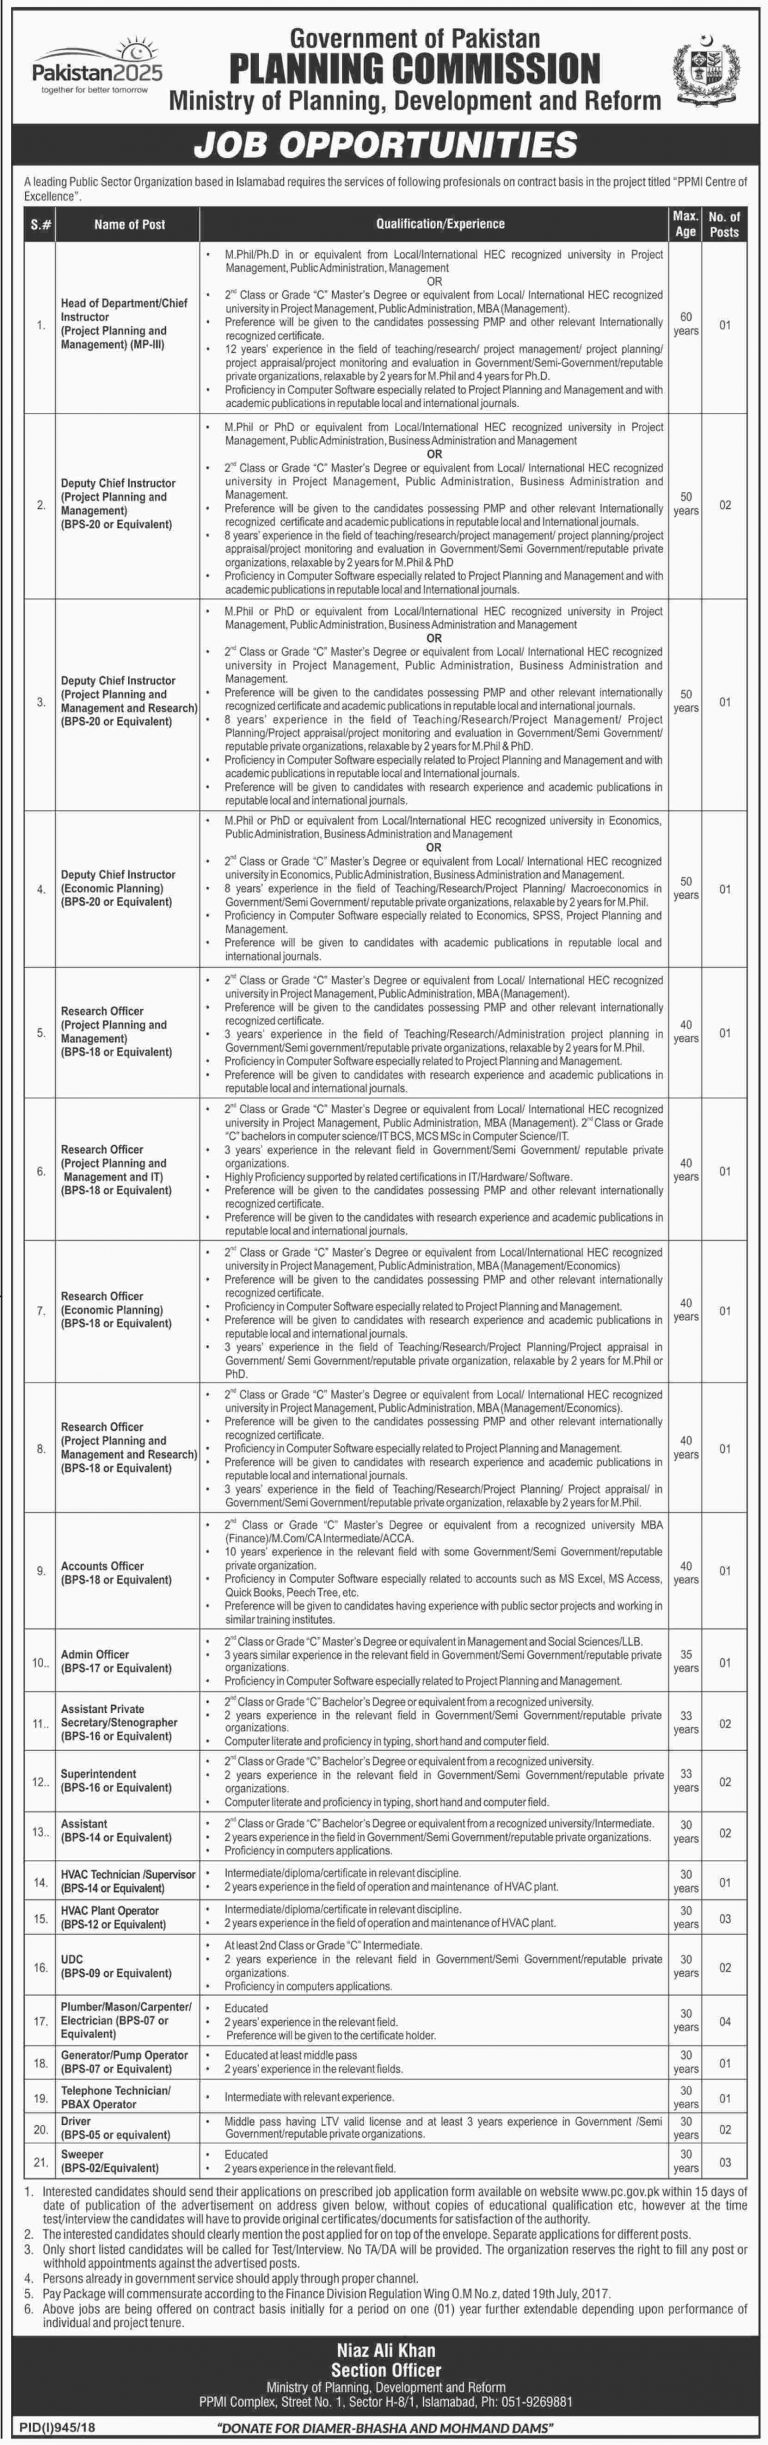 Ministry of Planning and Development & Reform Jobs 2018 Application Form Downlaod